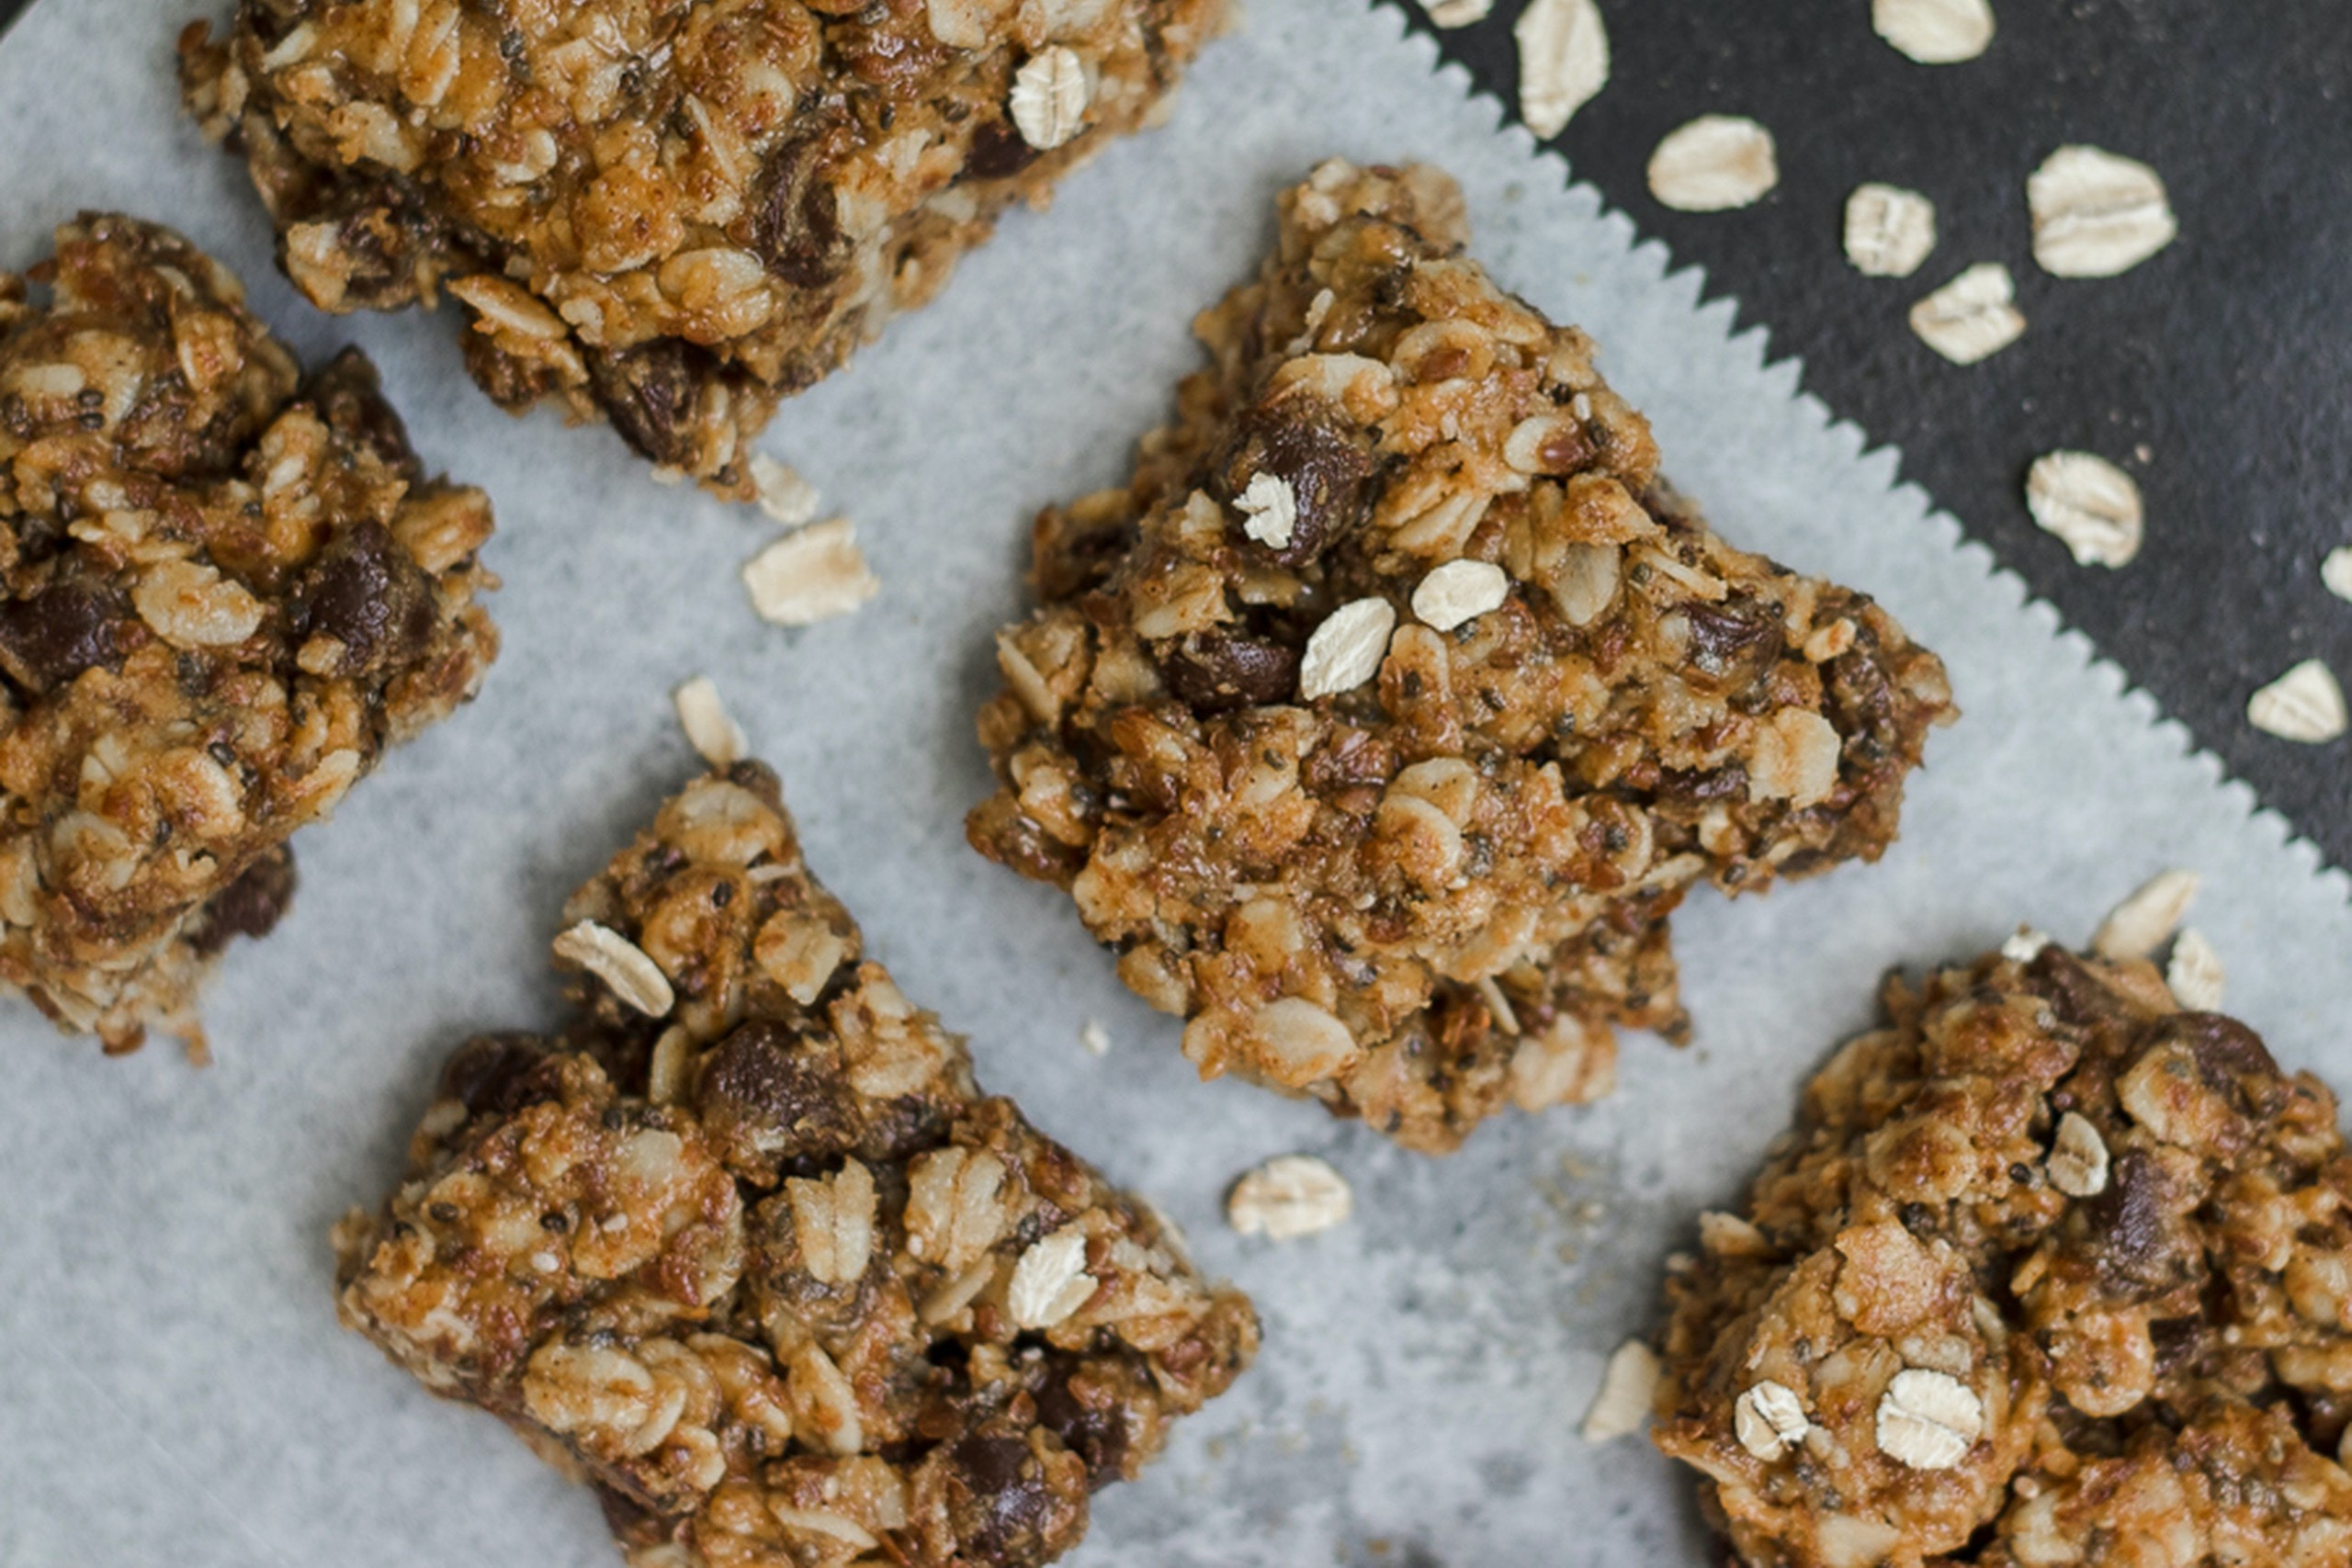 Granola bars with chocolate chips on wax paper.